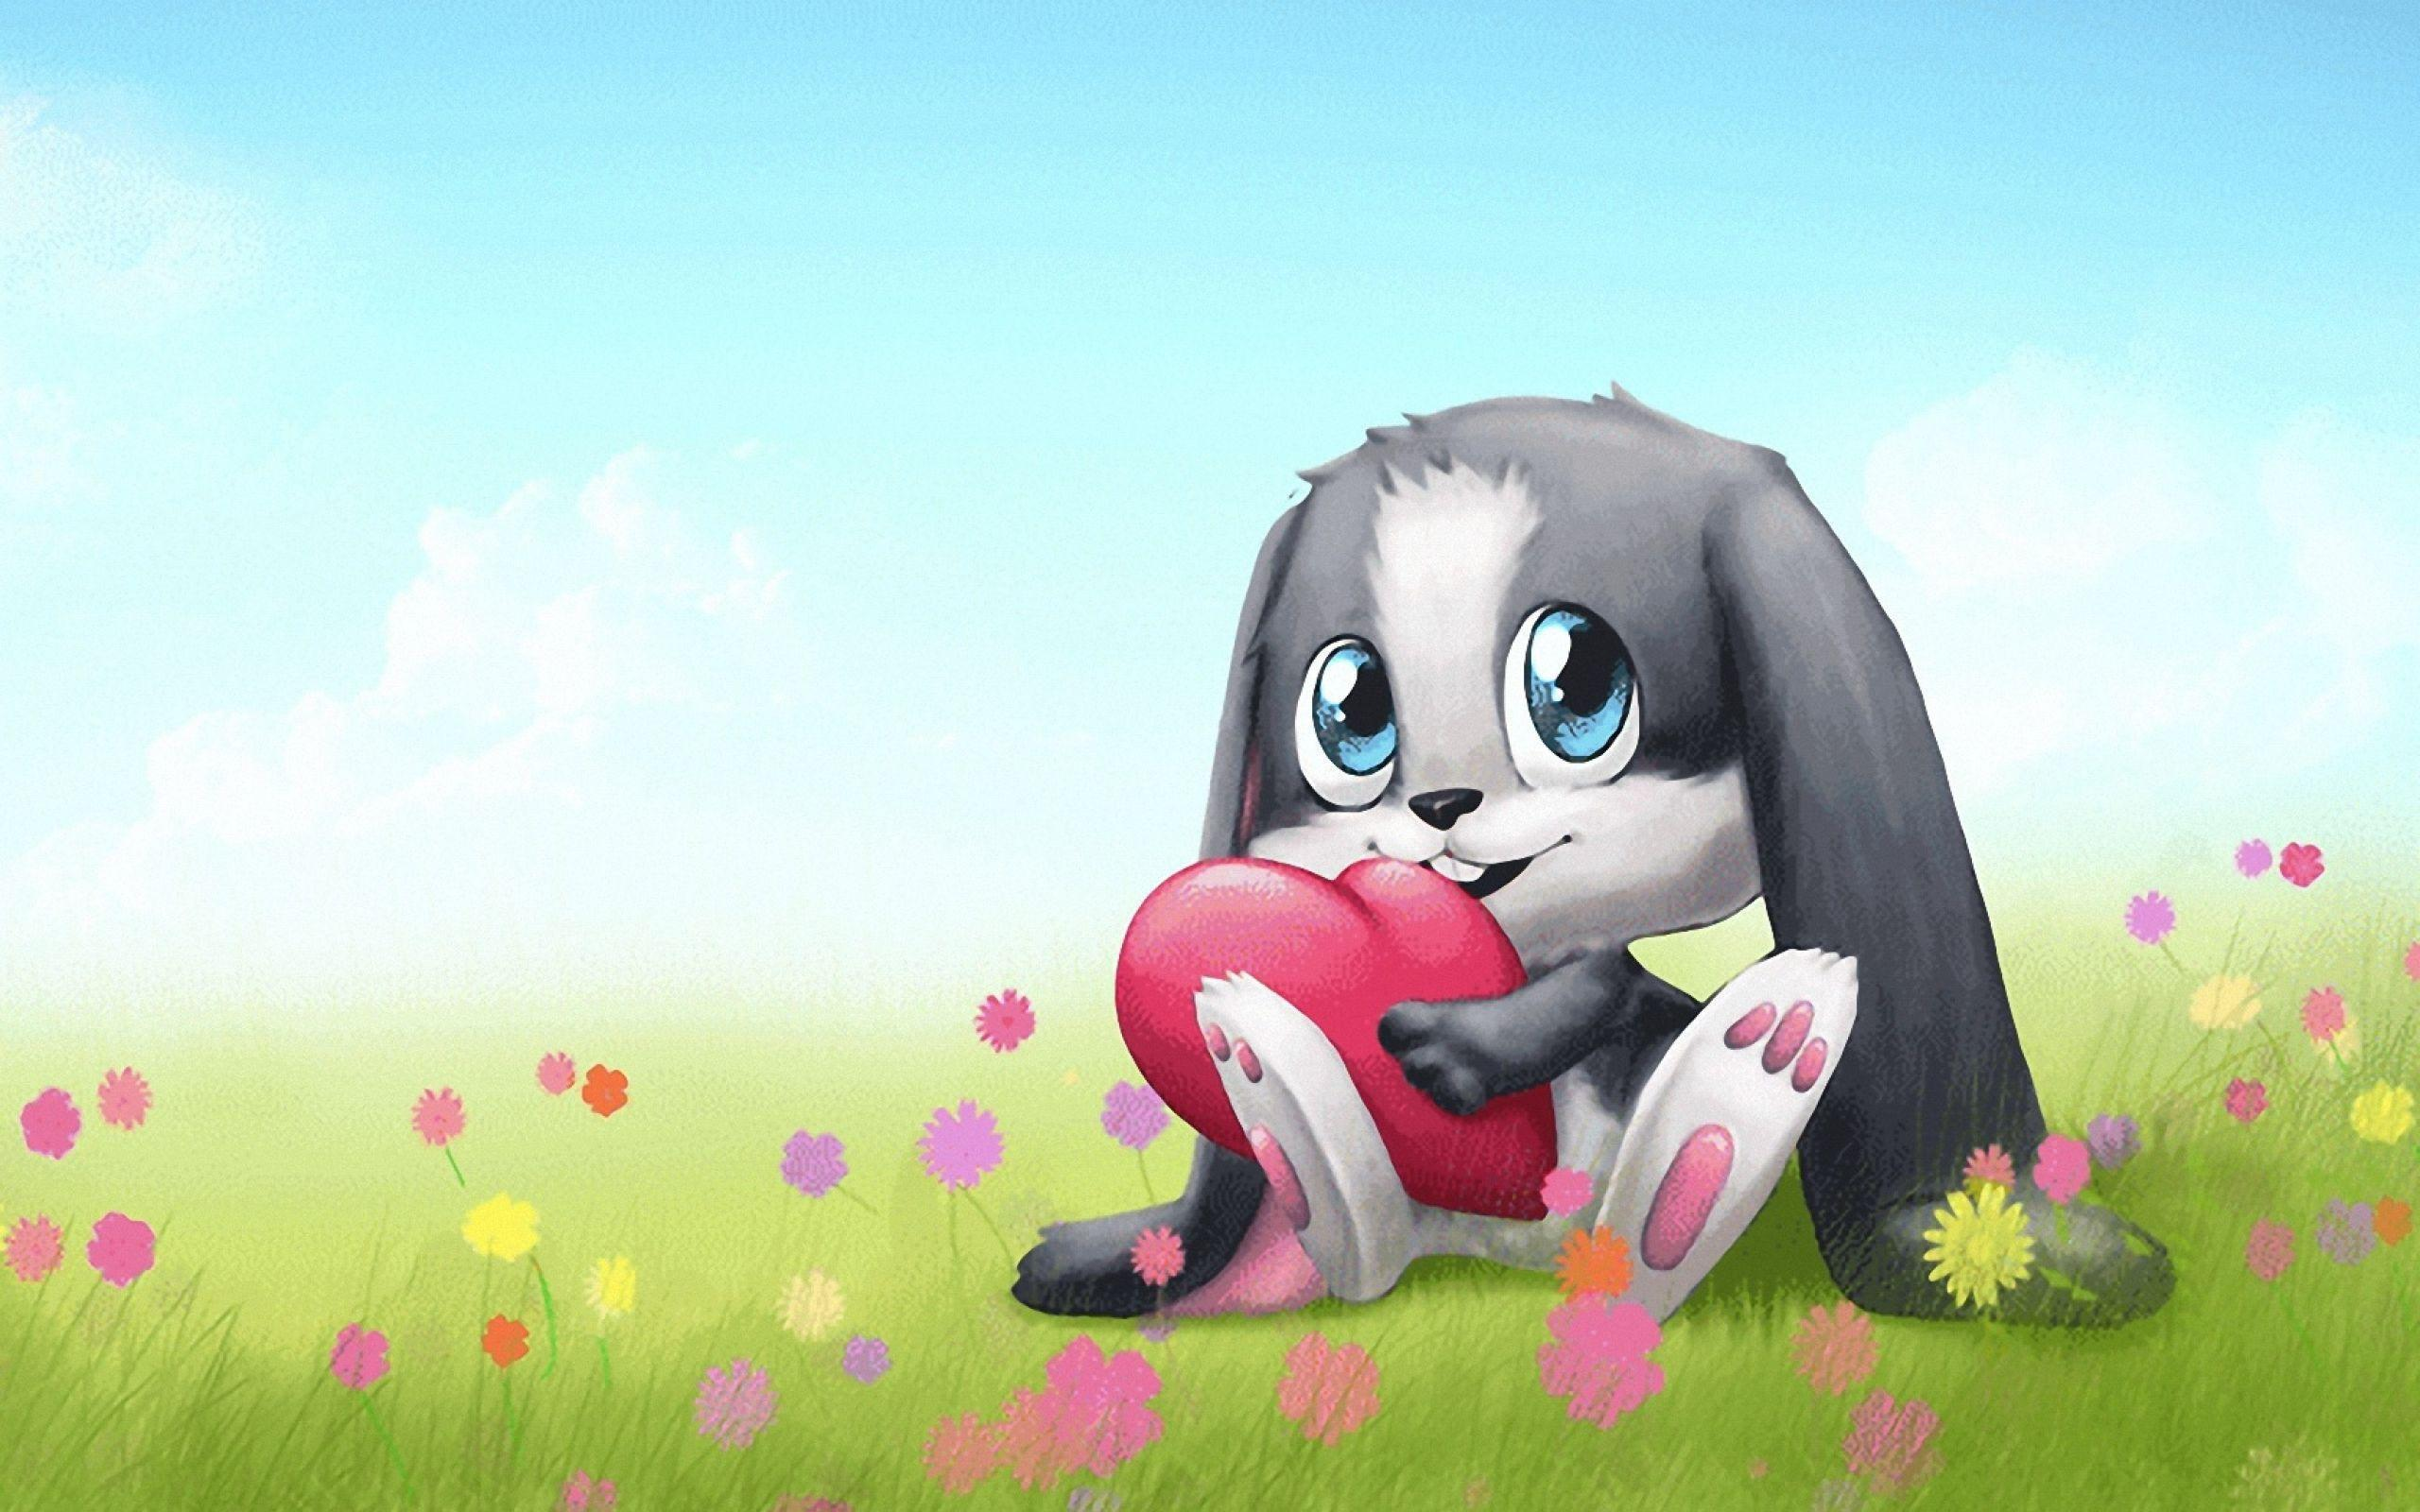 cartoon Love Full Hd Wallpaper : cute cartoon Wallpapers - Wallpaper cave